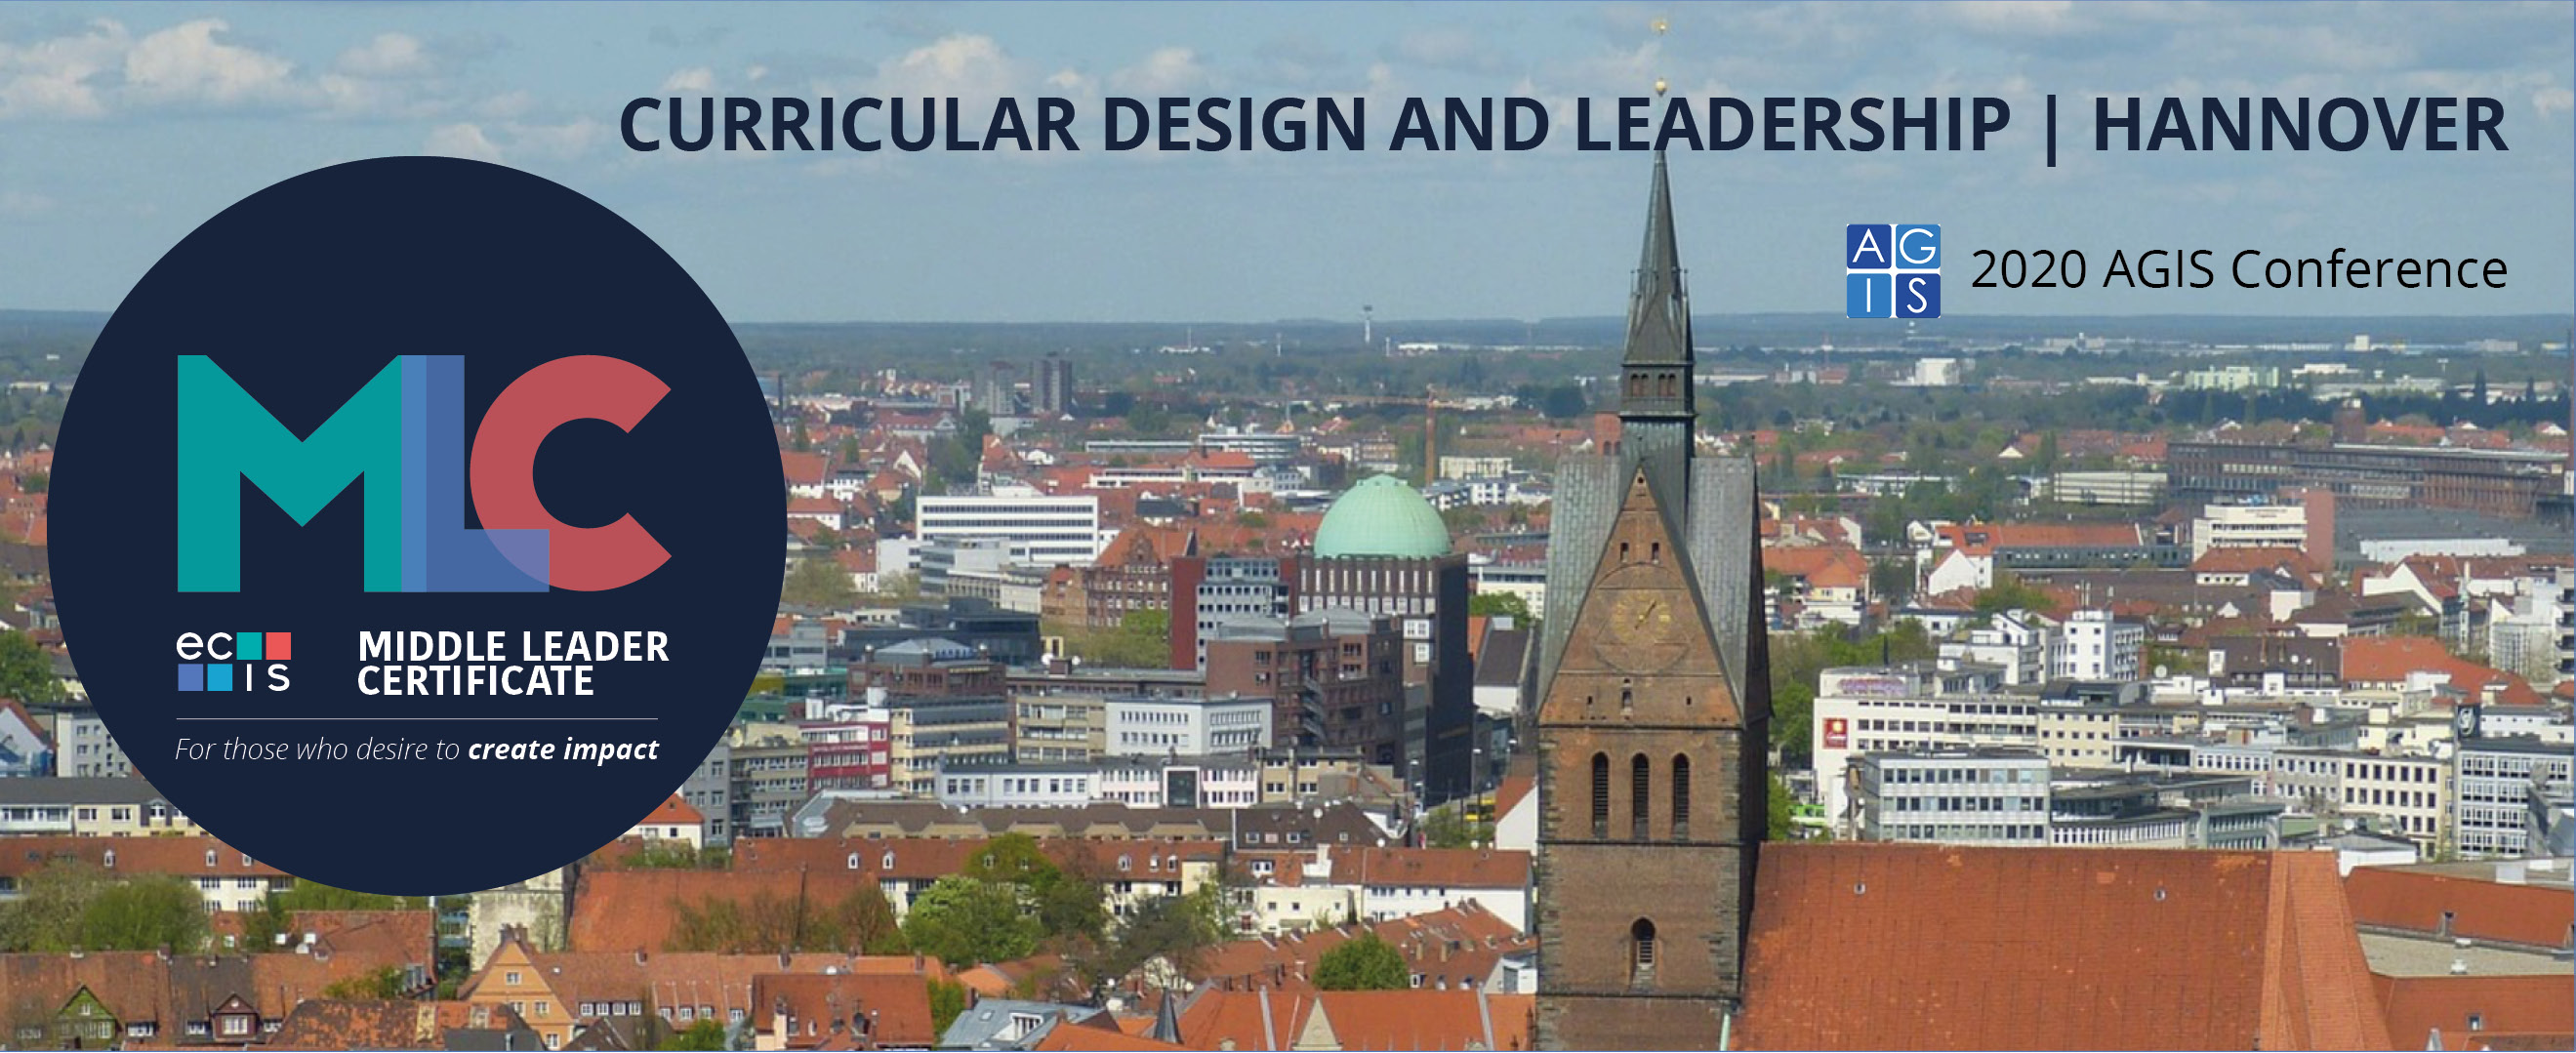 MLC - Curricular Design and Leadership - AGIS Conference 25 + 26 Jan